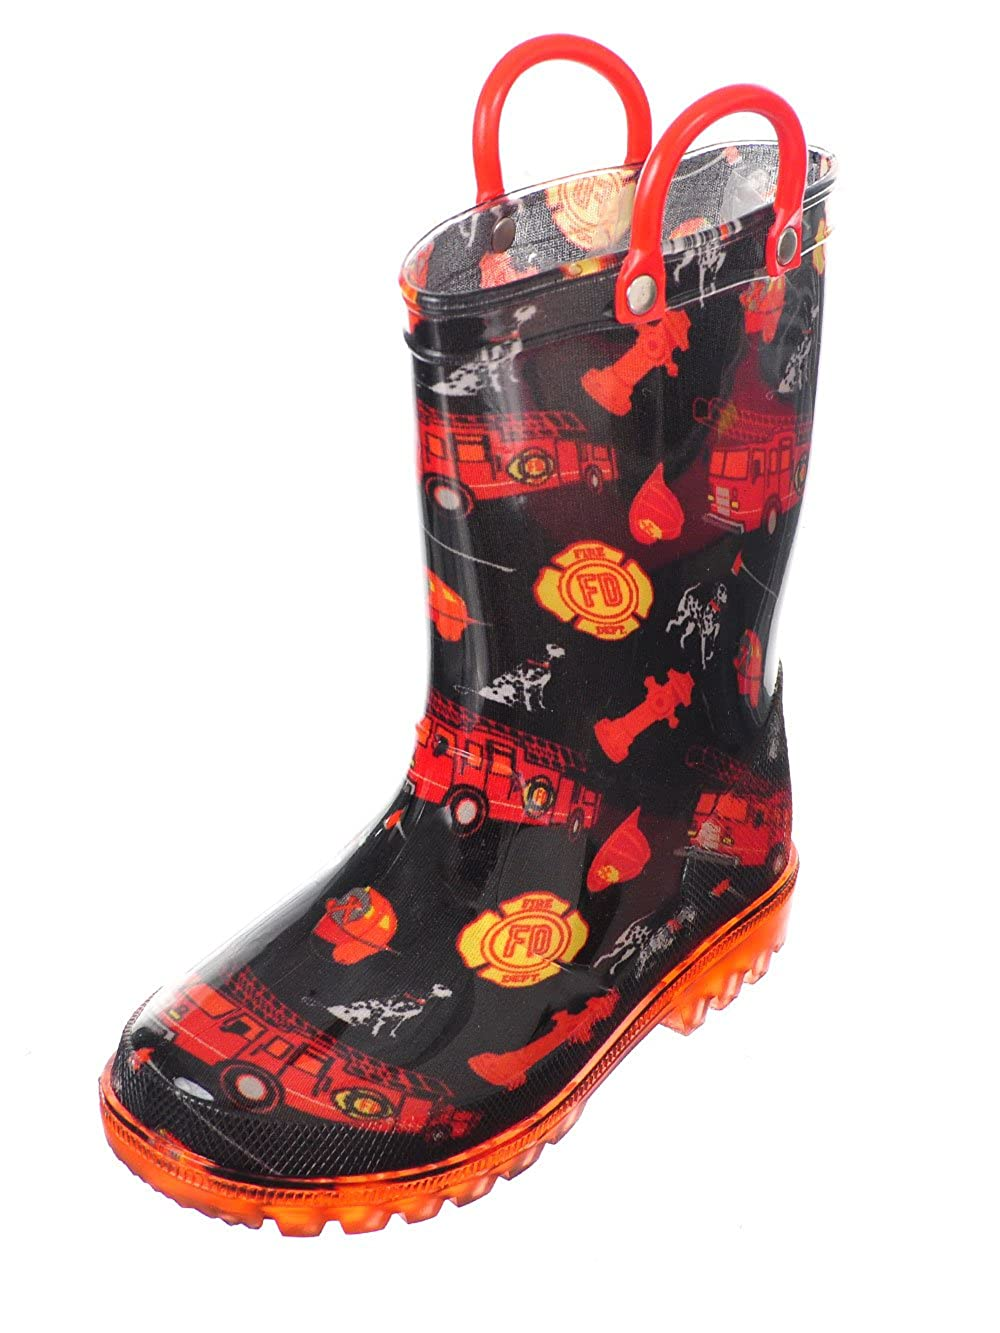 Chillipop Light up Rainboots for Boys, Girls & Toddlers with Fun Kid Prints with 5 Lights